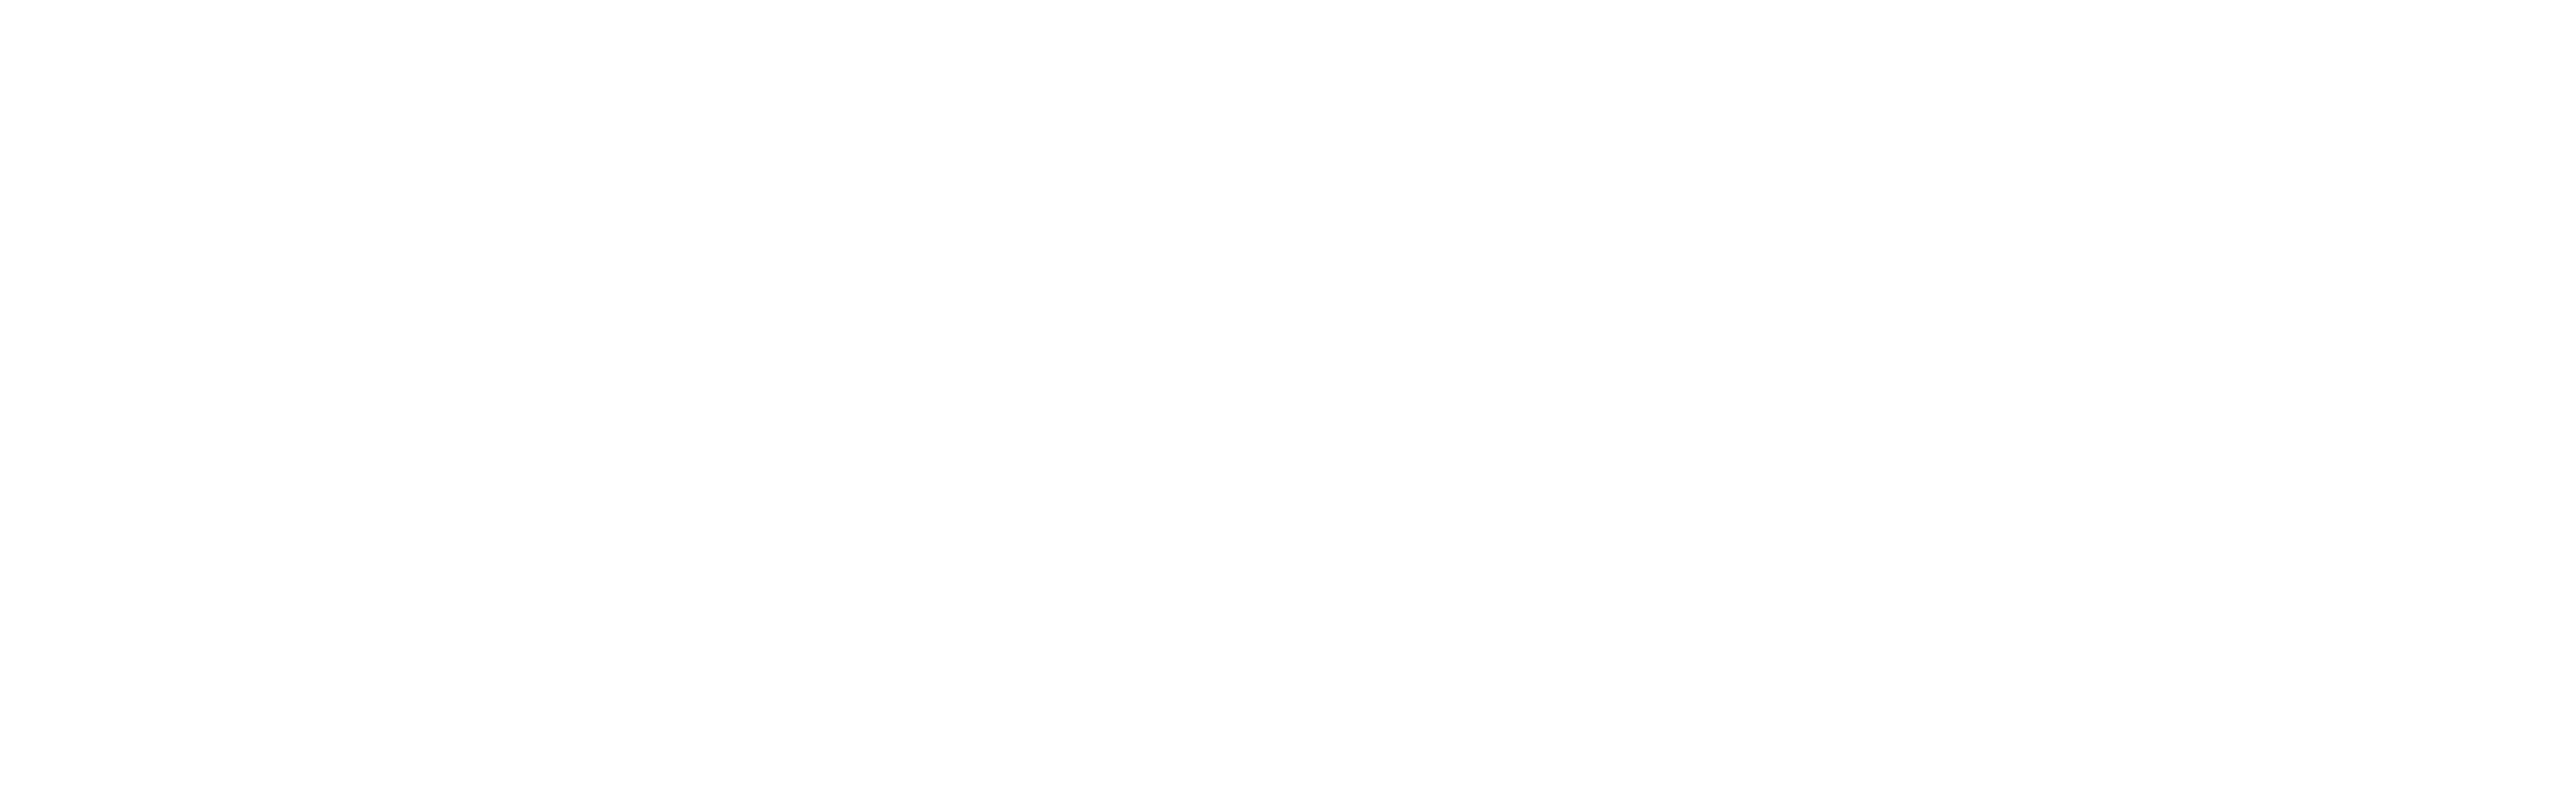 Liveyourlife ® Clothing | Spain